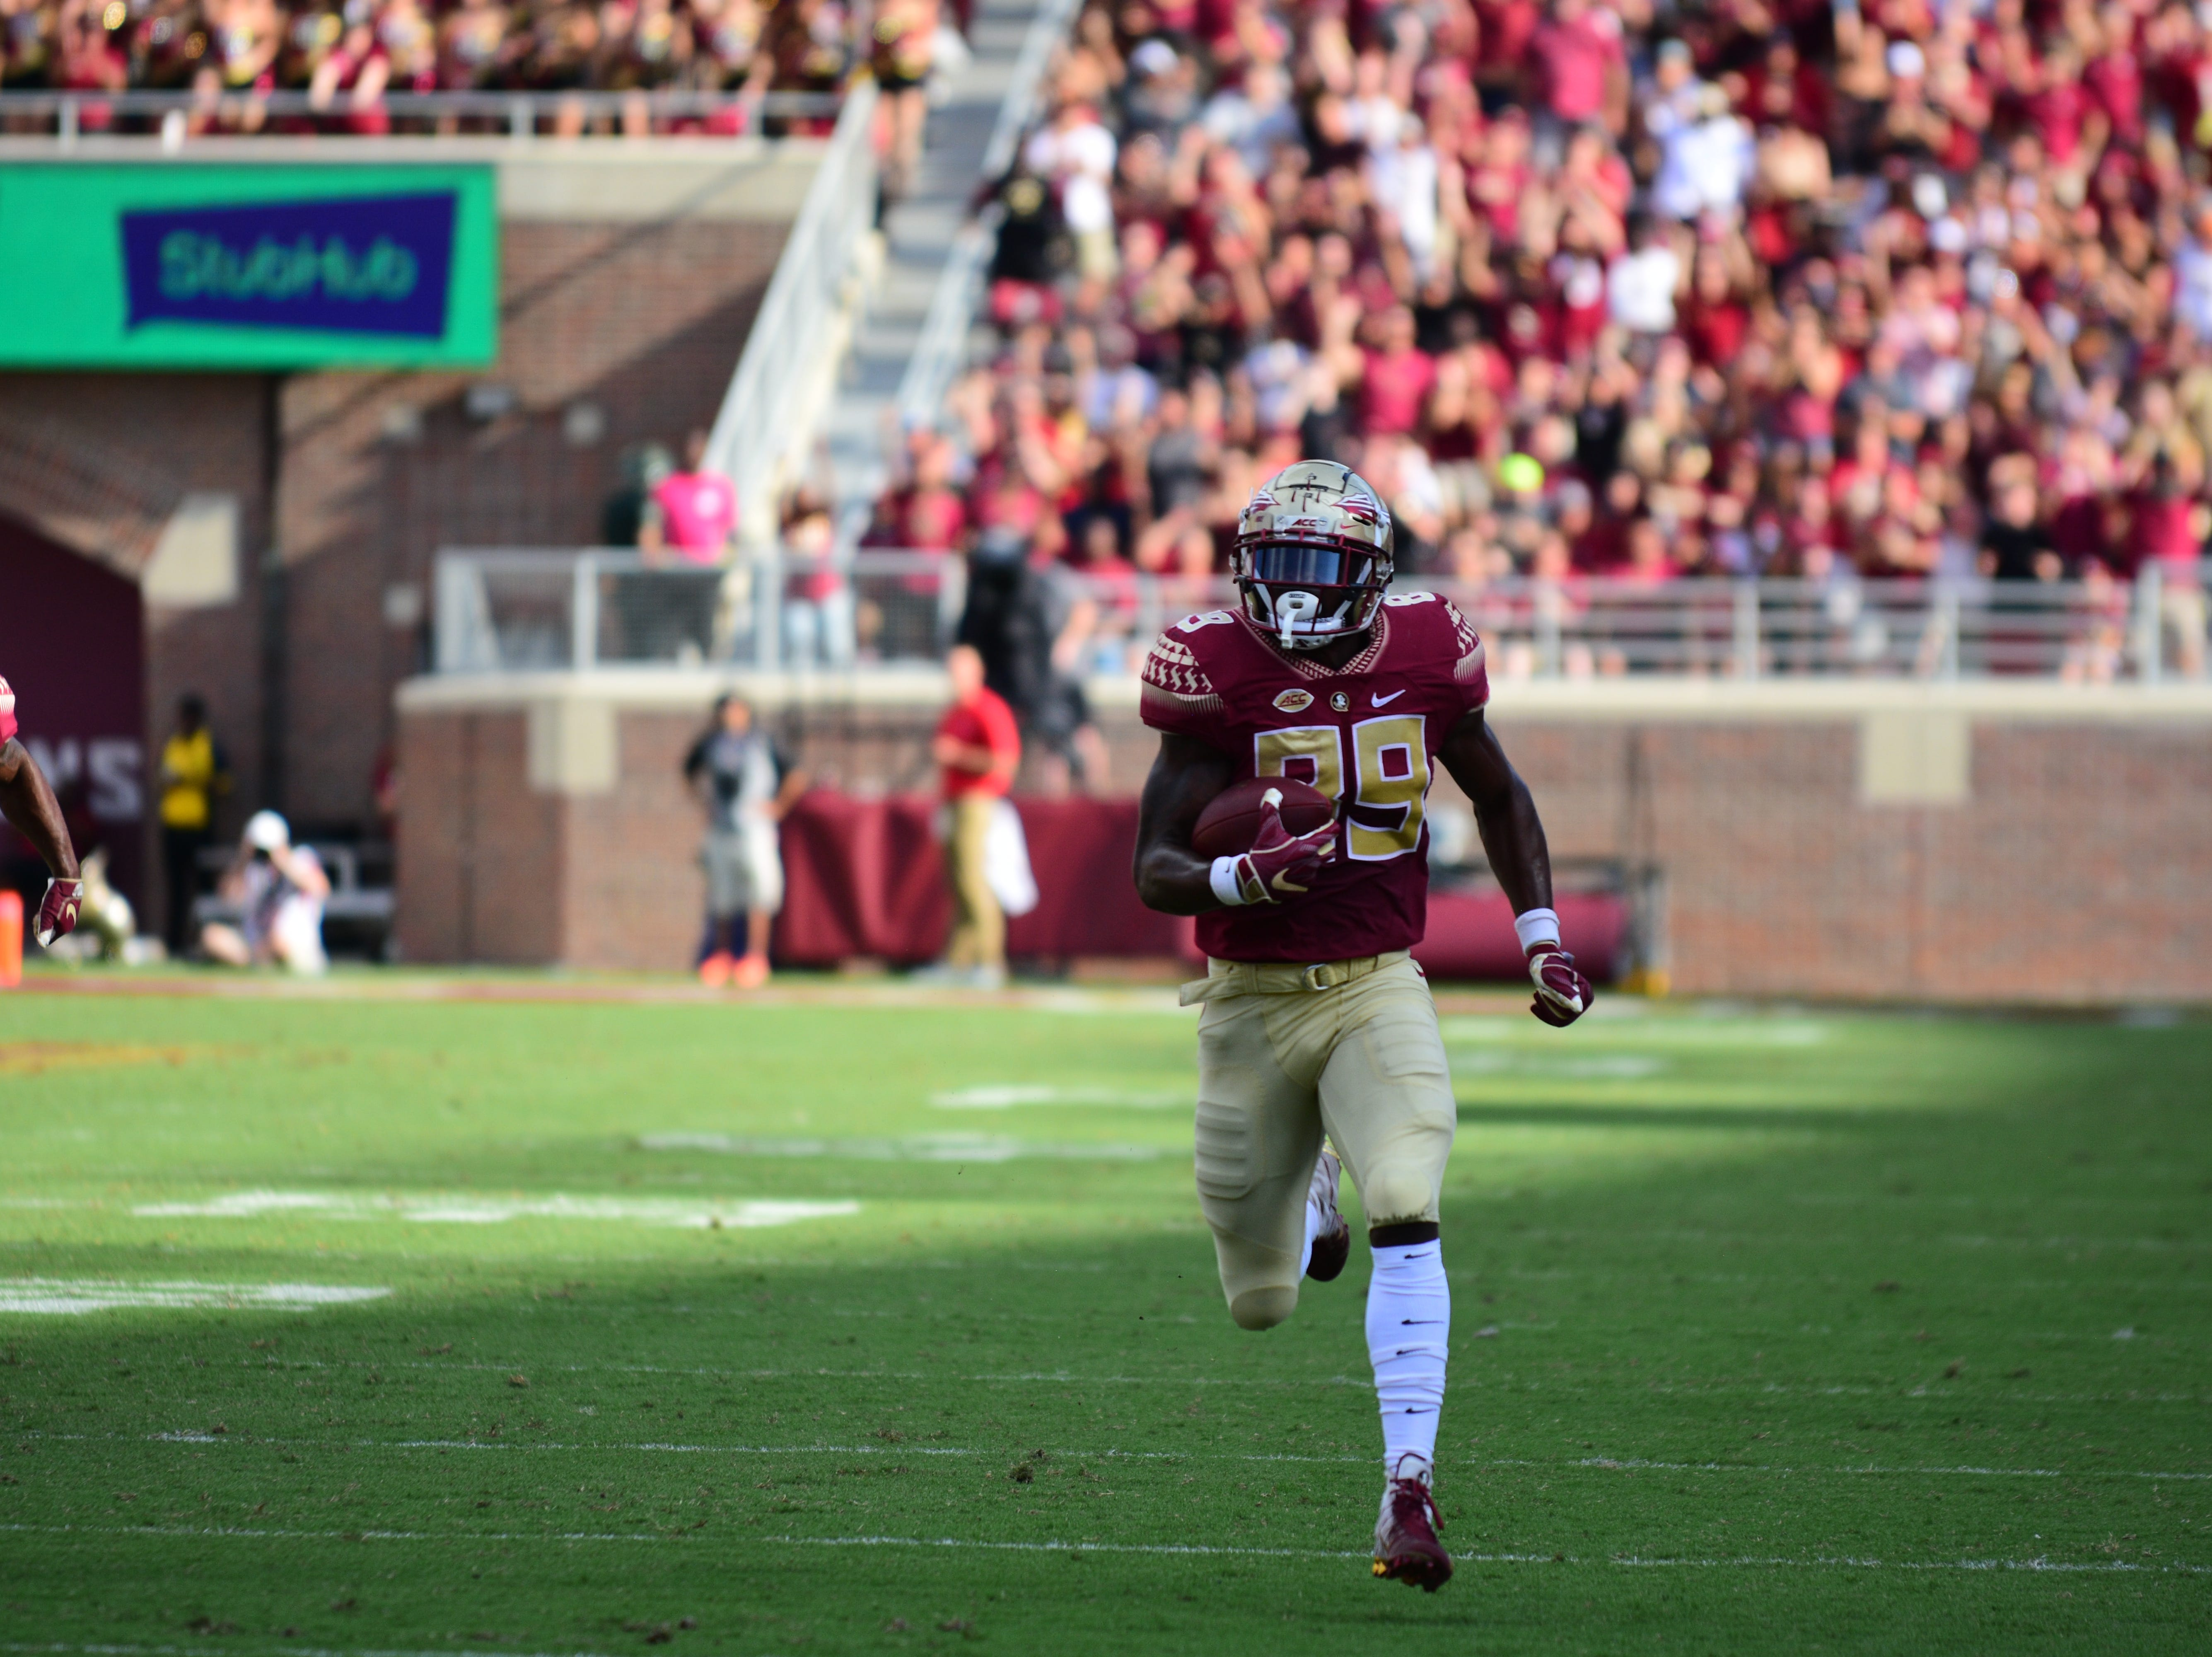 Junior defensive end Brian Burns takes it to the house during FSU's 38-17 victory over Wake Forest at Doak Campbell Stadium on Saturday.